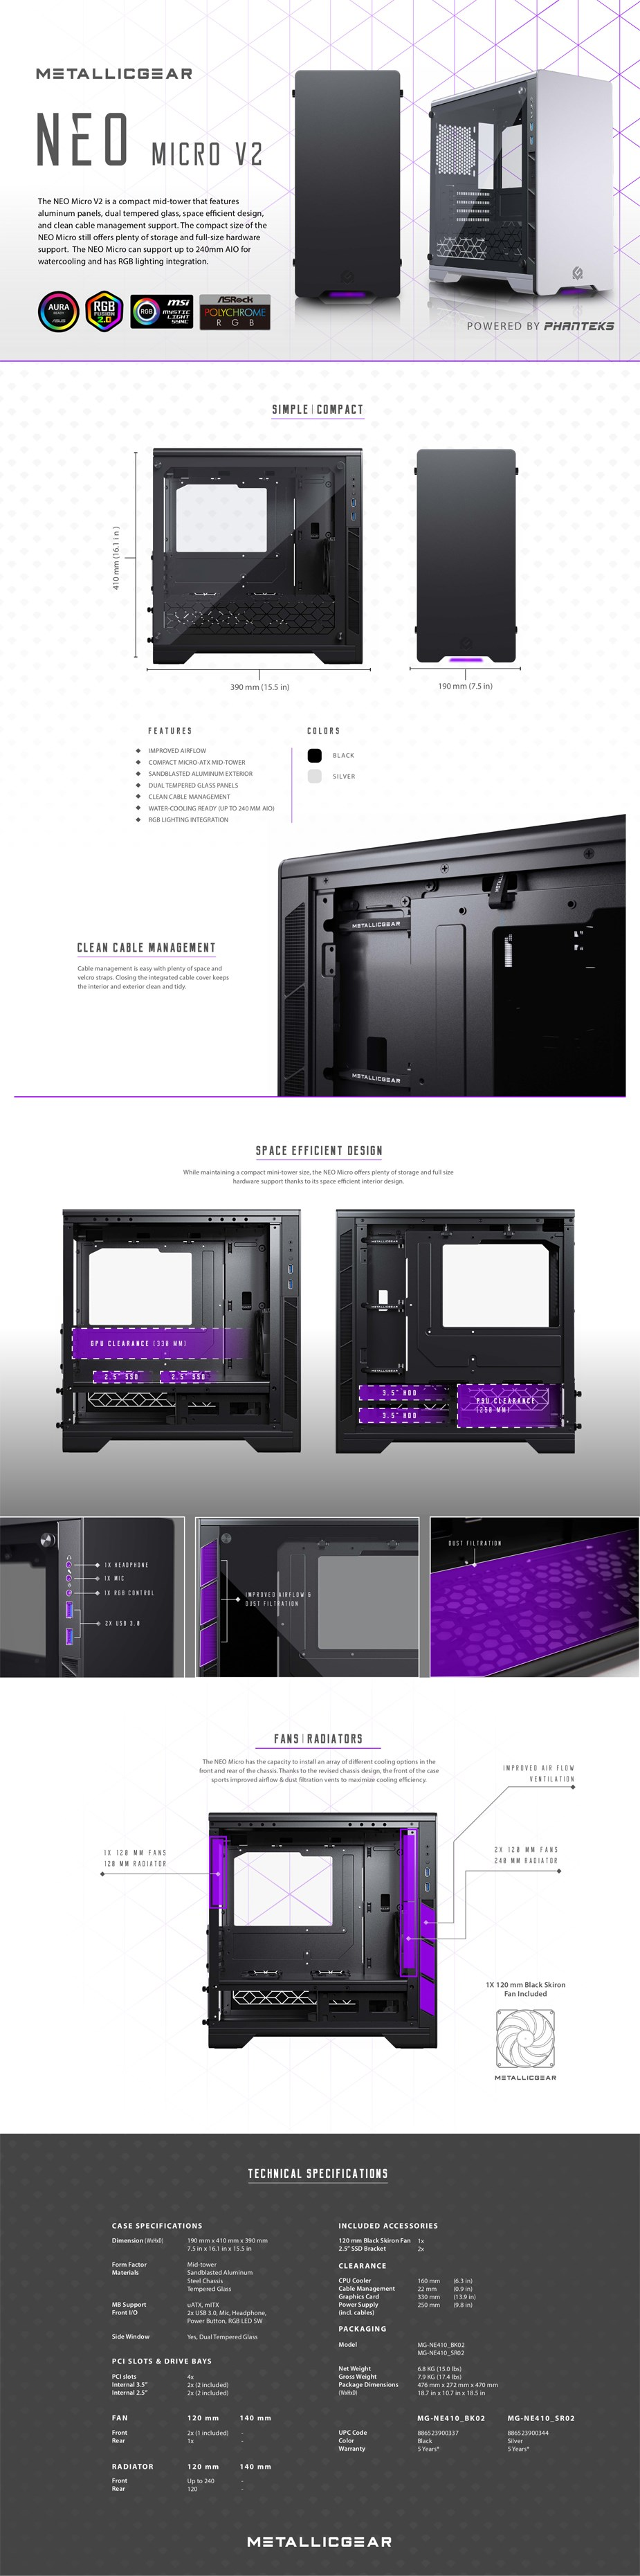 MetallicGear Neo Micro V2 RGB Tempered Glass Mid-Tower Mini-ITX Case - Black  - Overview 1